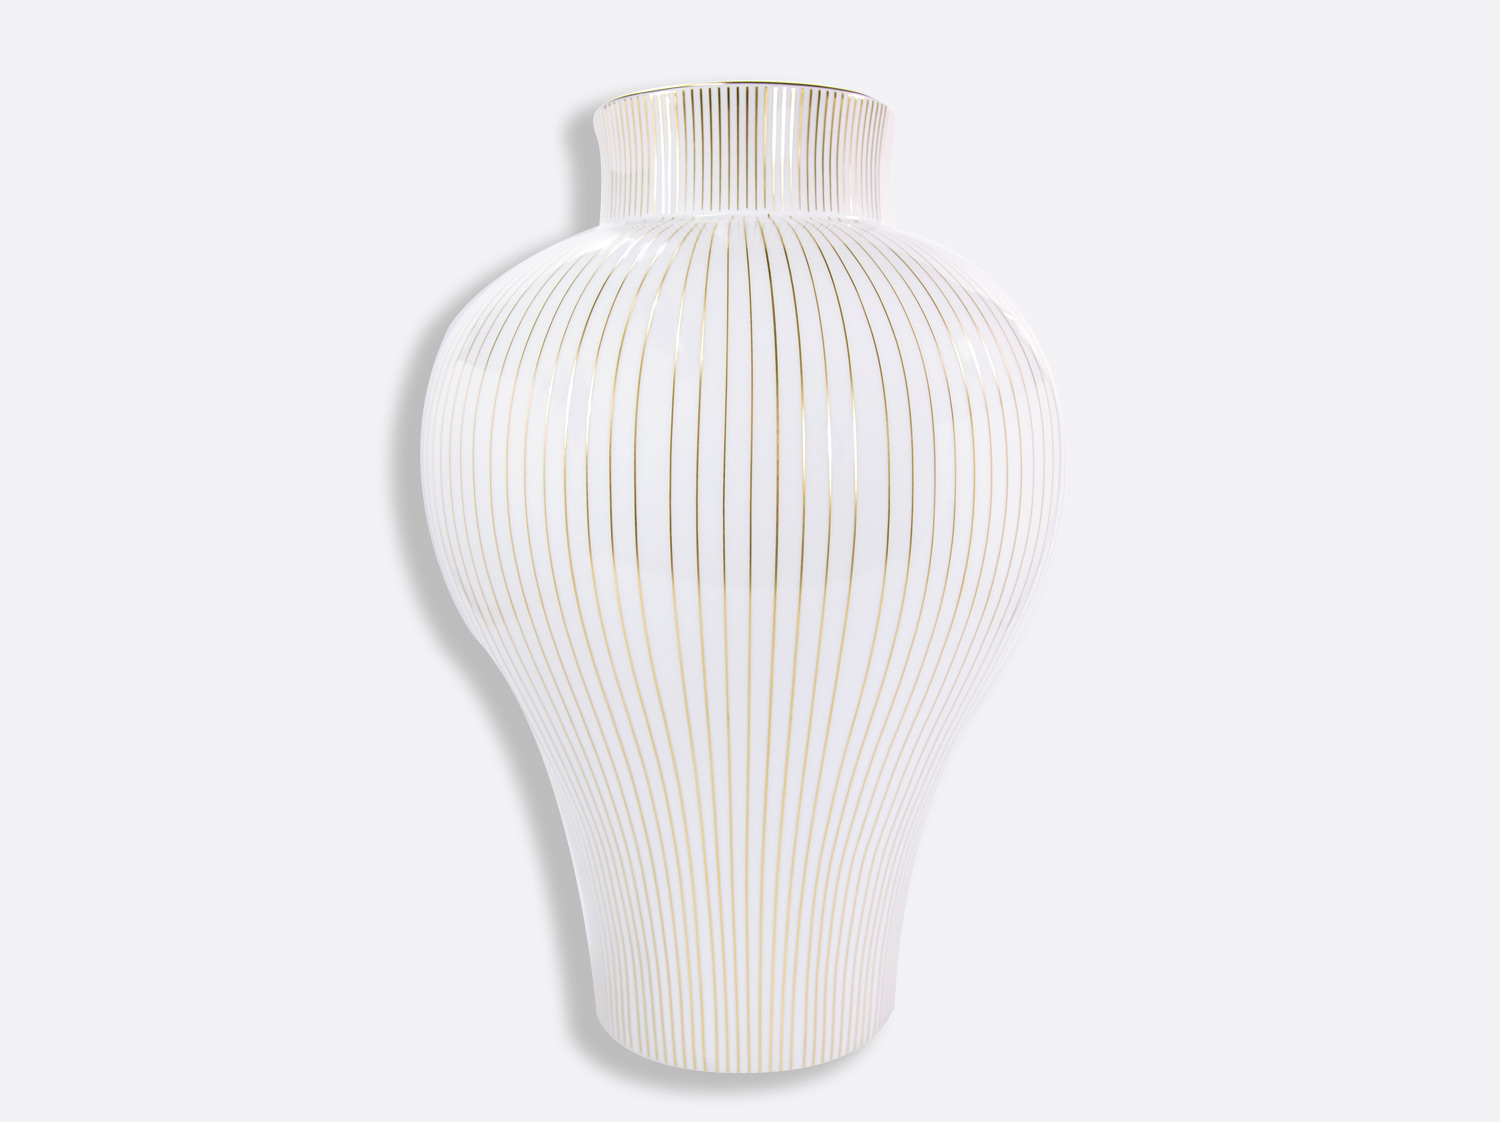 Vase H. 46 cm D. 32,5 cm en porcelaine de la collection Cage Bernardaud